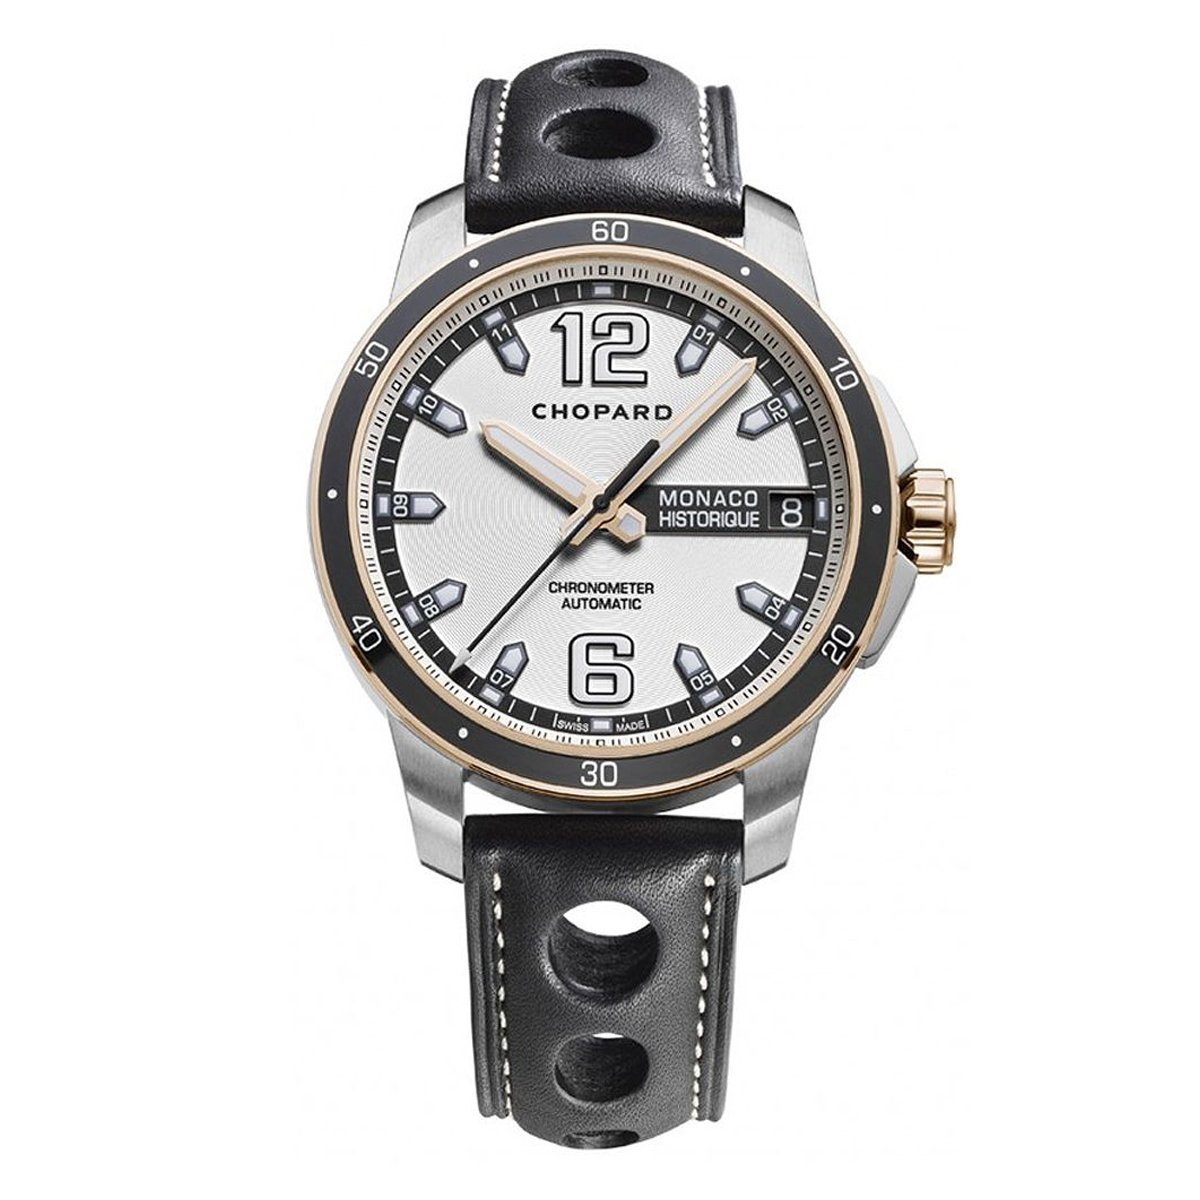 Chopard Grand Prix Monaco Historique Men's Watch Rose Gold - Watches & Crystals